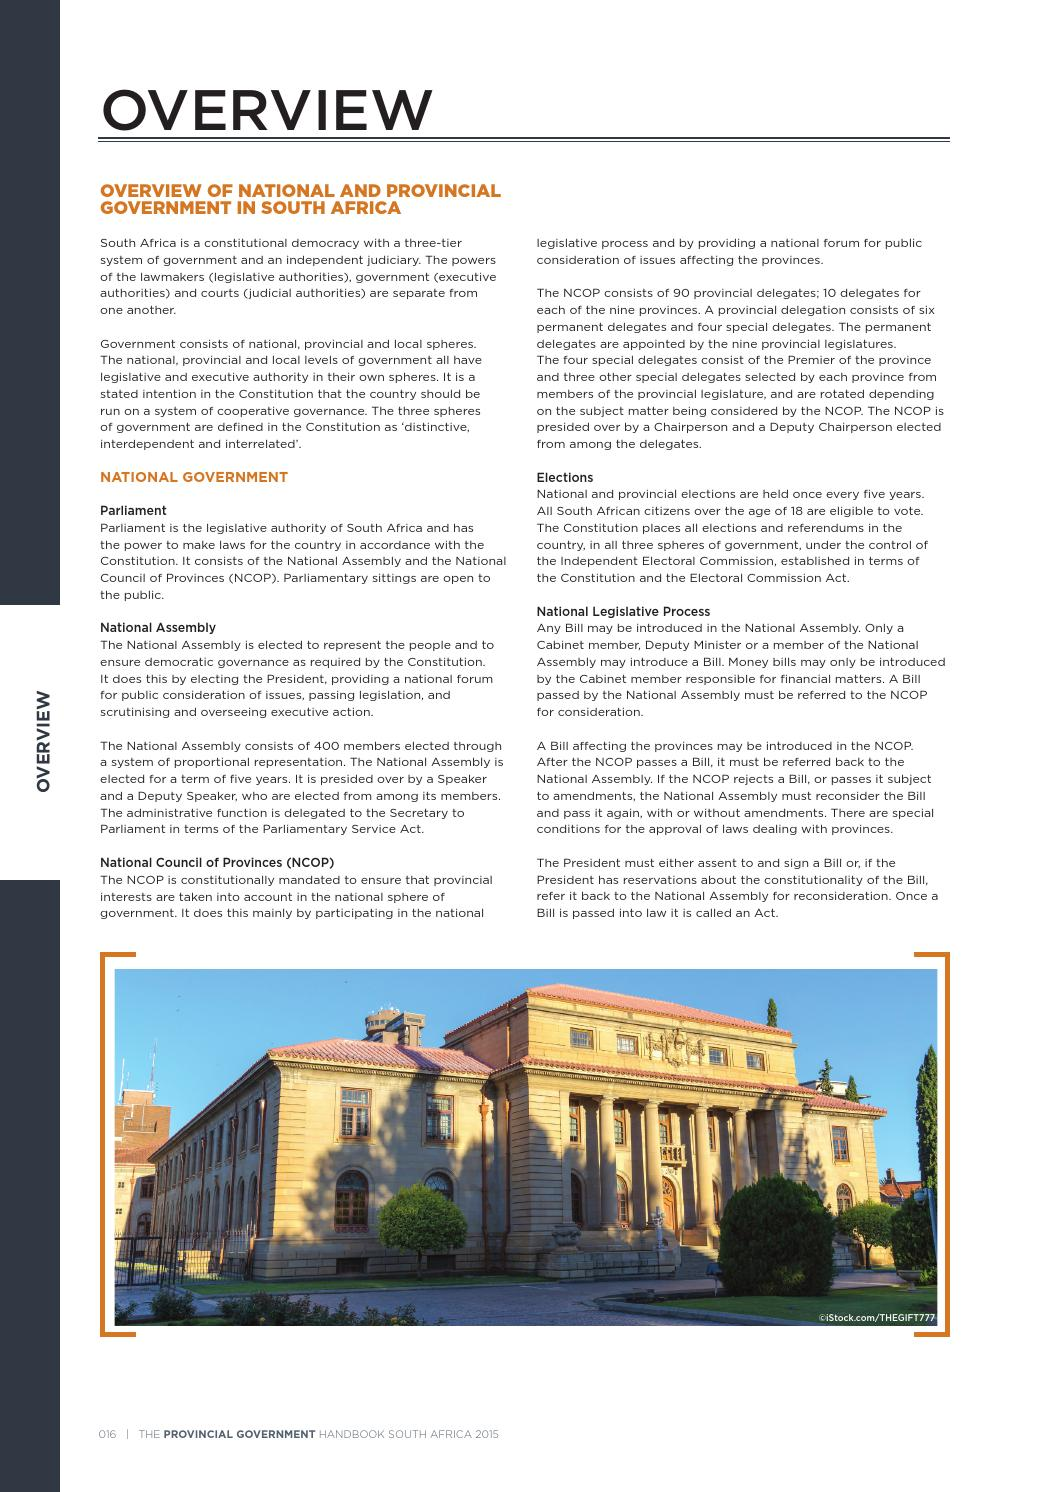 Provincial Government Handbook - South Africa 2015 by Yes Media - issuu